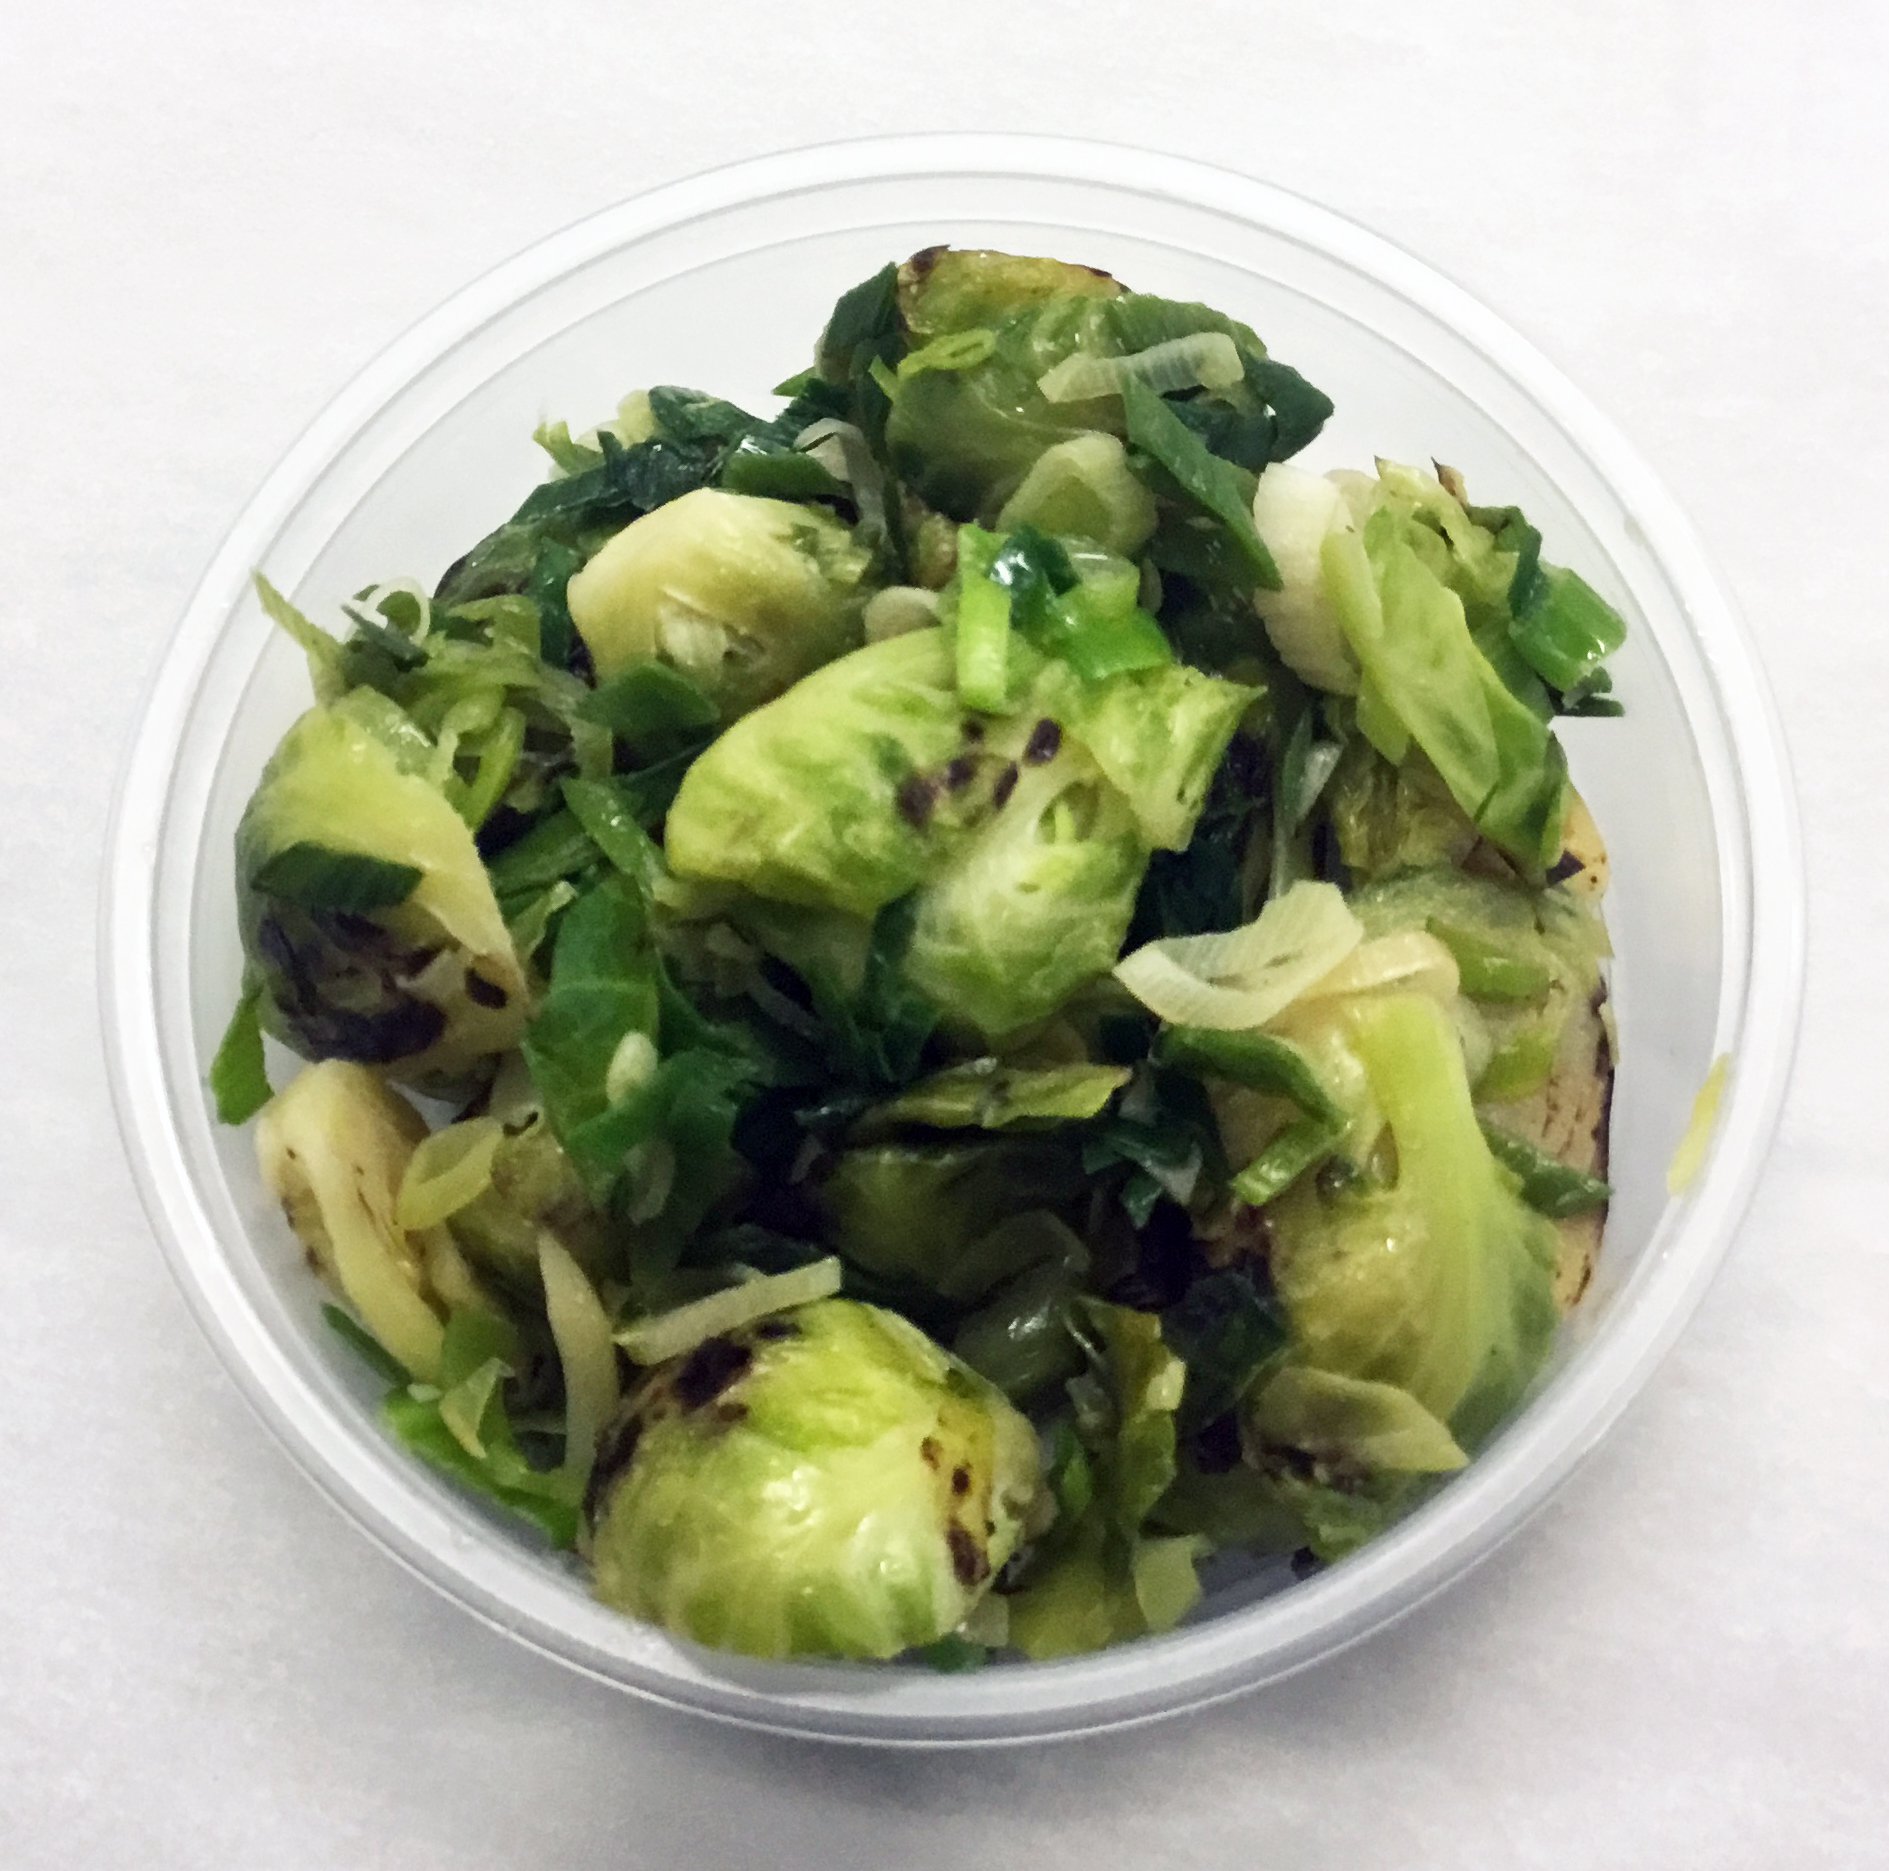 Roasted Brussel sprouts with spring onions and a tamari and brown rice syrup sauce.